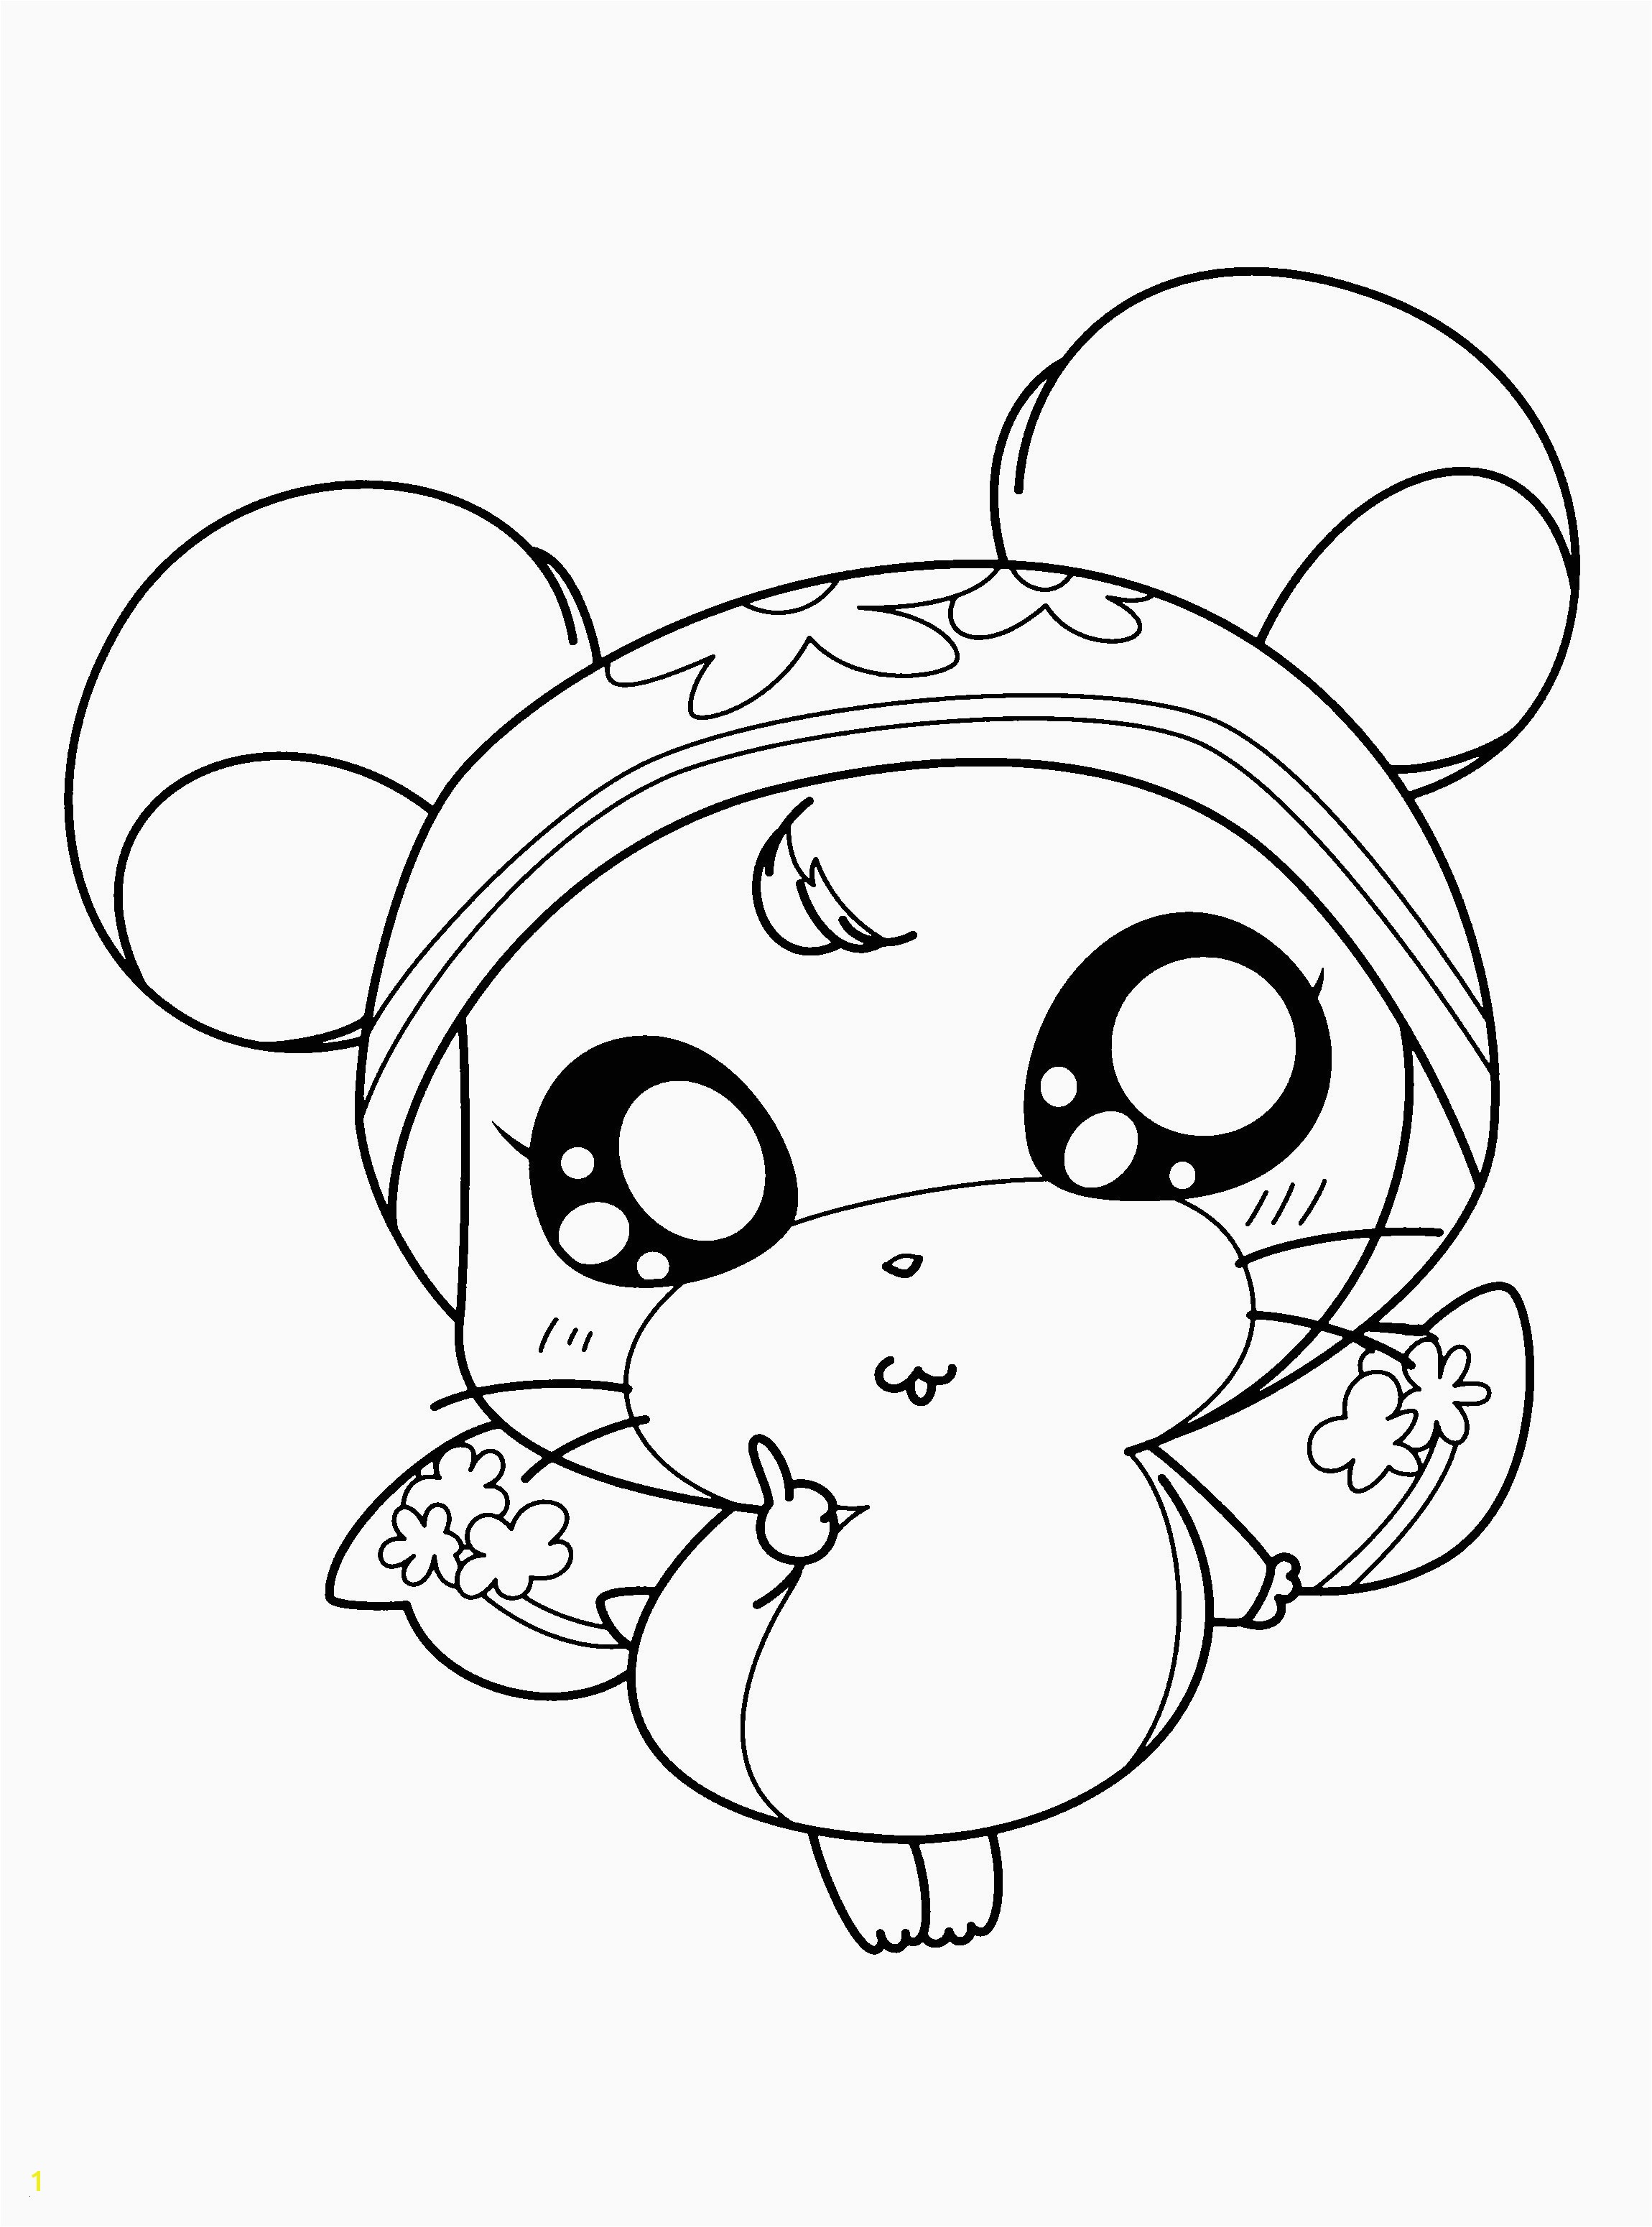 Coloring Pages Cute Baby Animals wallpaper details